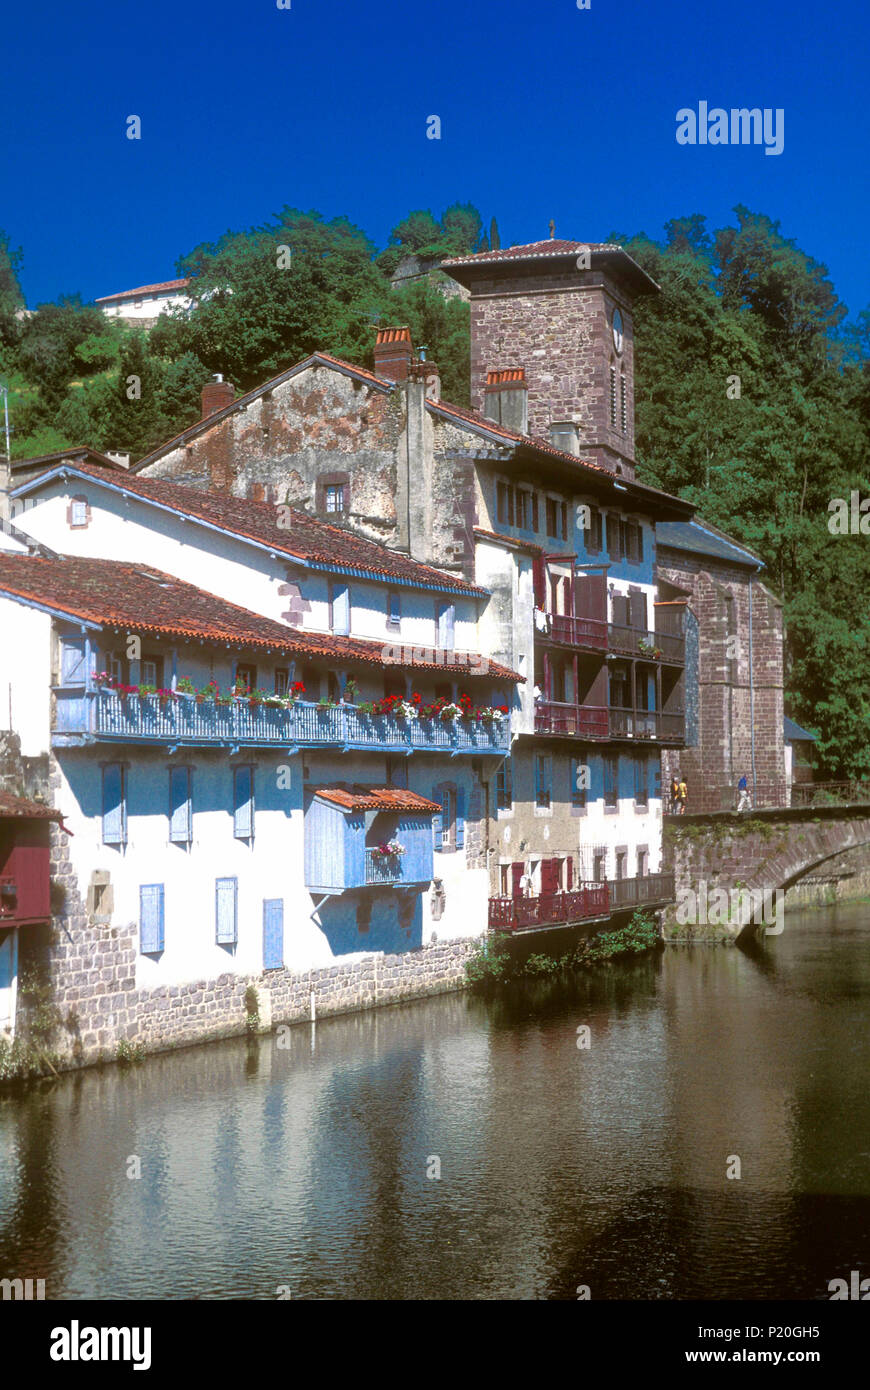 Bayonne Saint Jean Pied De Port France Basque Country Houses On The Edge Of The Nive River In